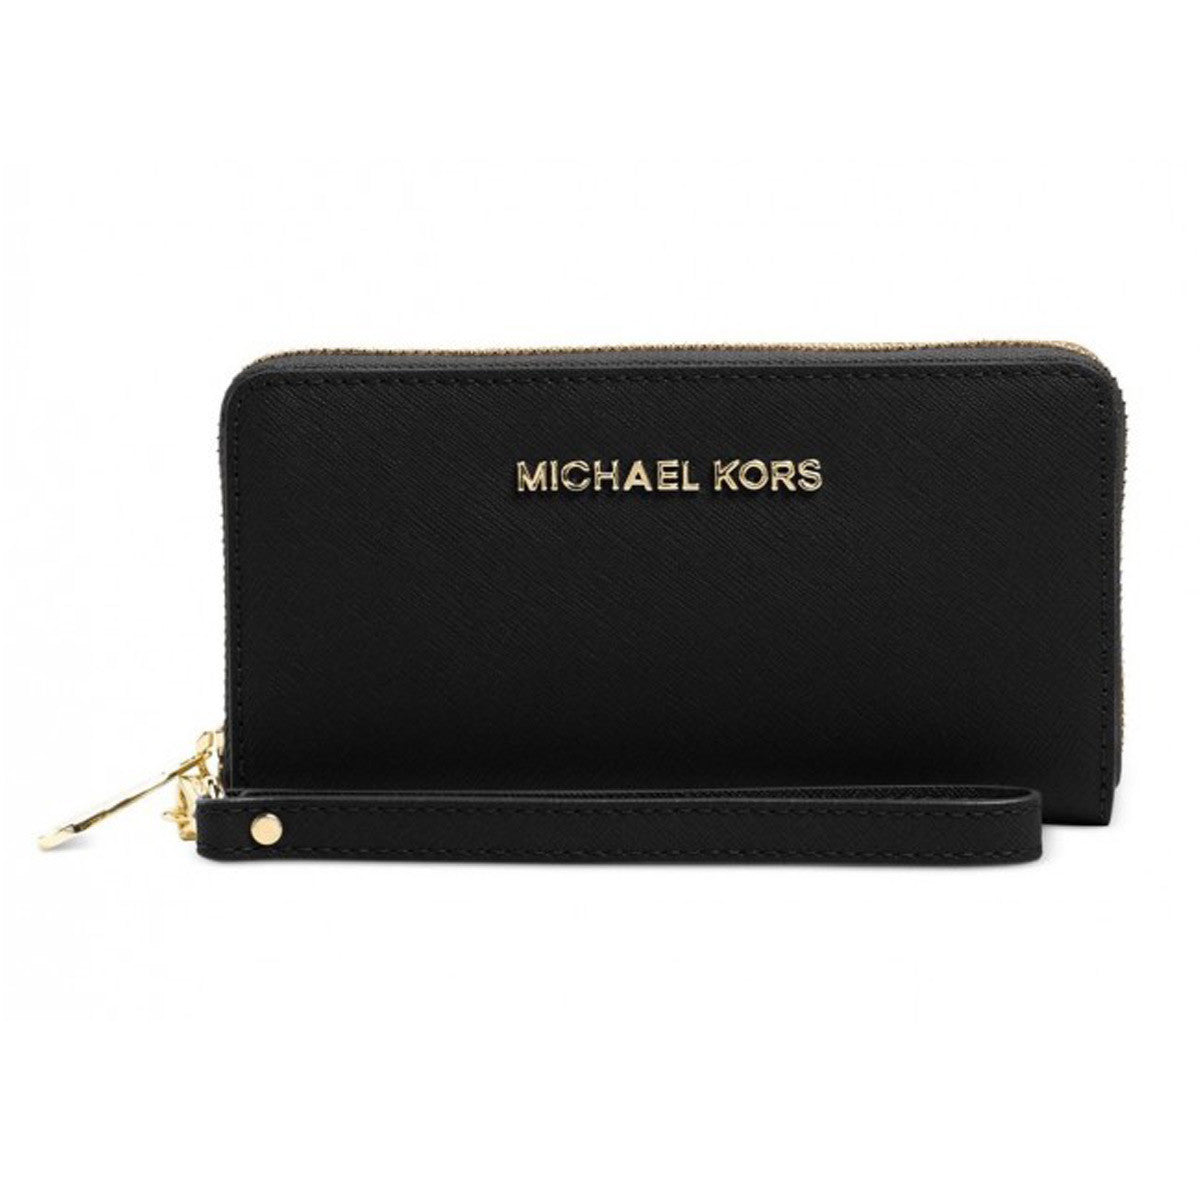 Michael Kors 32H4STVE9L-001 Women's Jet Set Travel Large Black Saffiano Leather Smartphone Wristlett